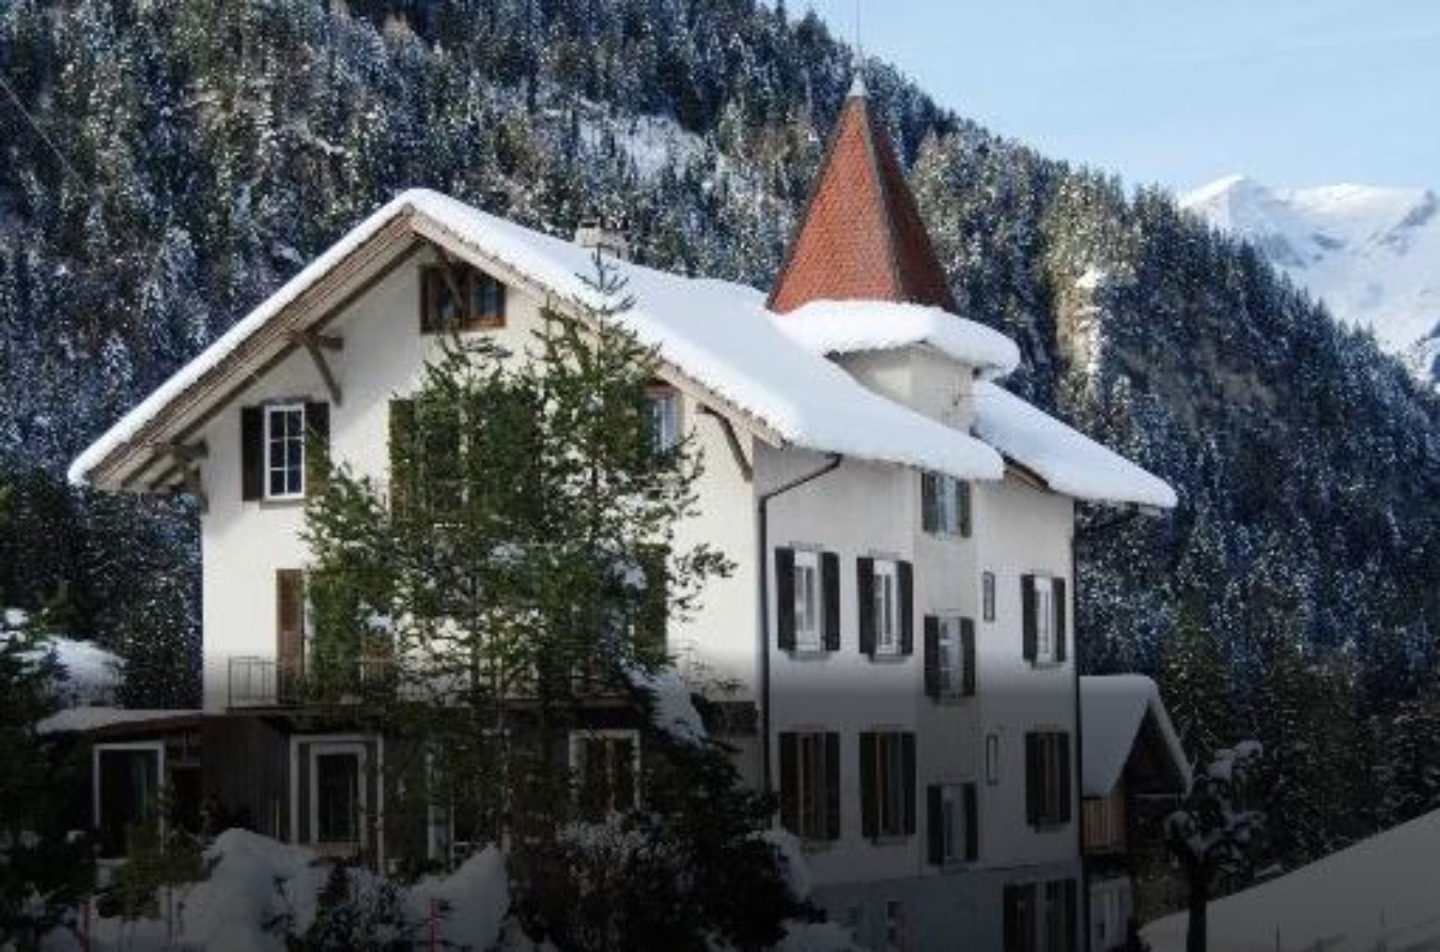 A house covered in snow at Haus Schönegg.